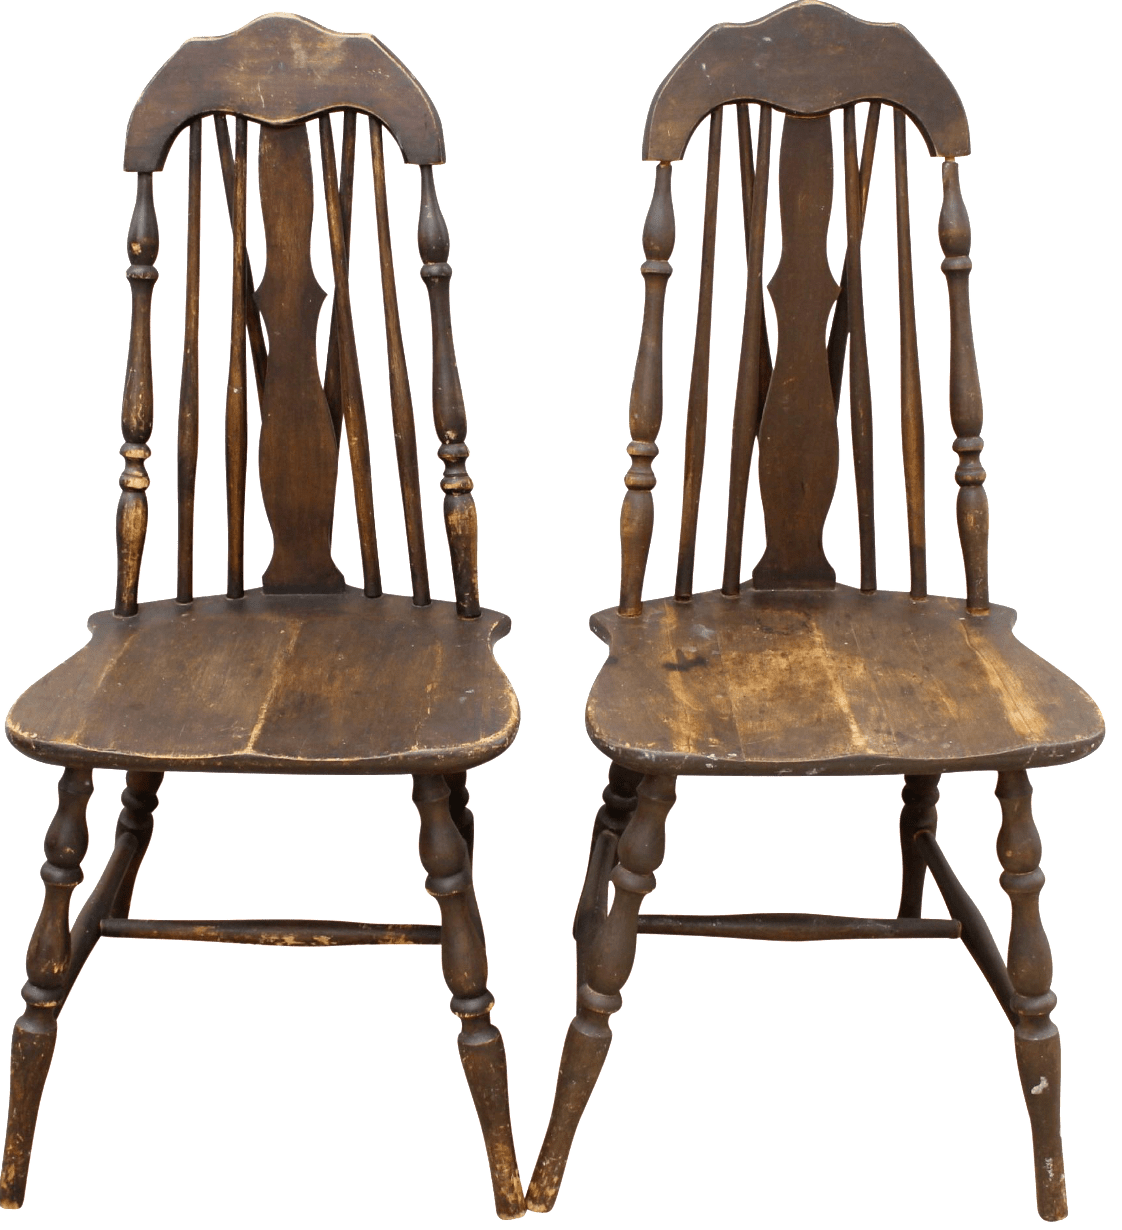 antique windsor chairs office chair legs furniture